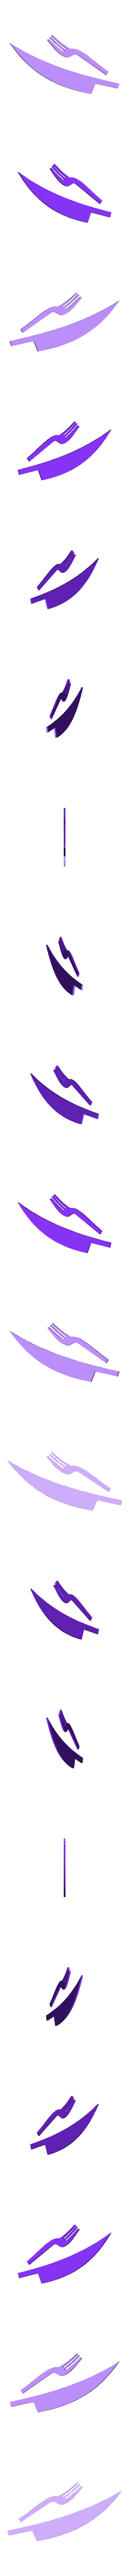 Knife_and_Fork.stl Télécharger fichier STL gratuit Roadrunner Whirligig • Design imprimable en 3D, Sparky6548